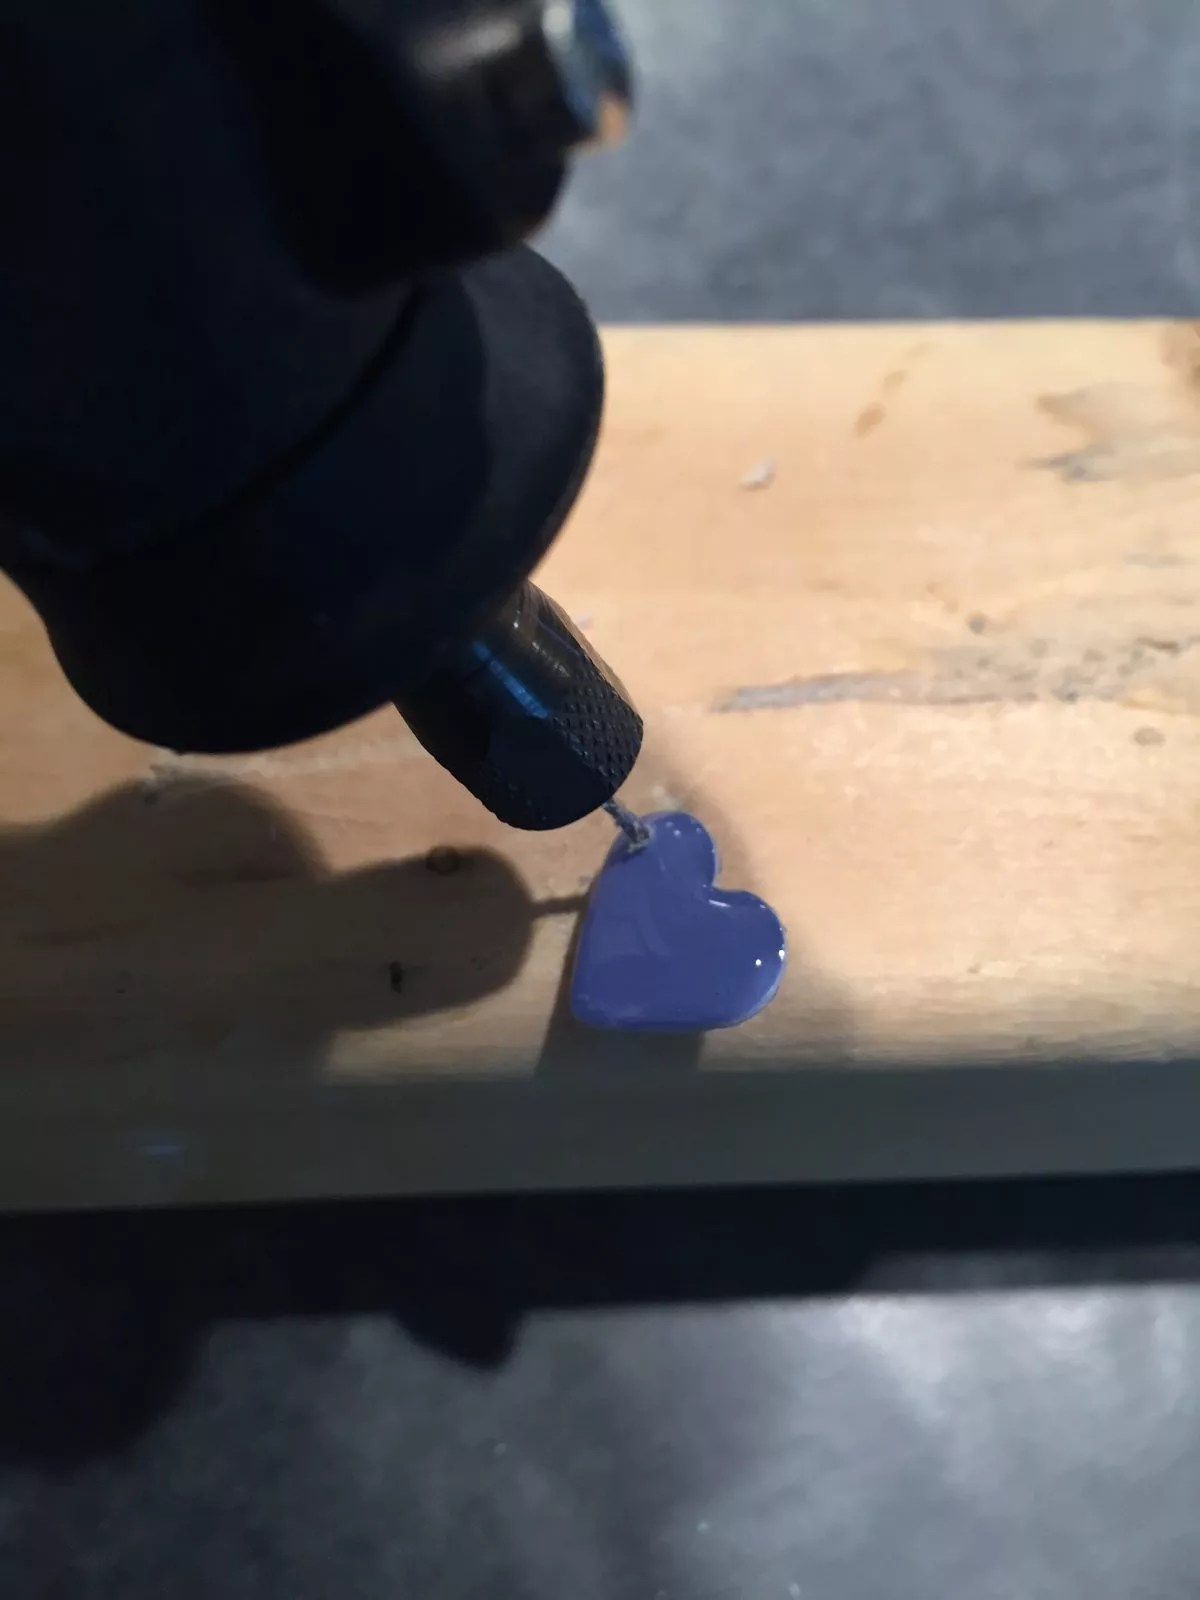 drilling resin hearts with a dremel tool